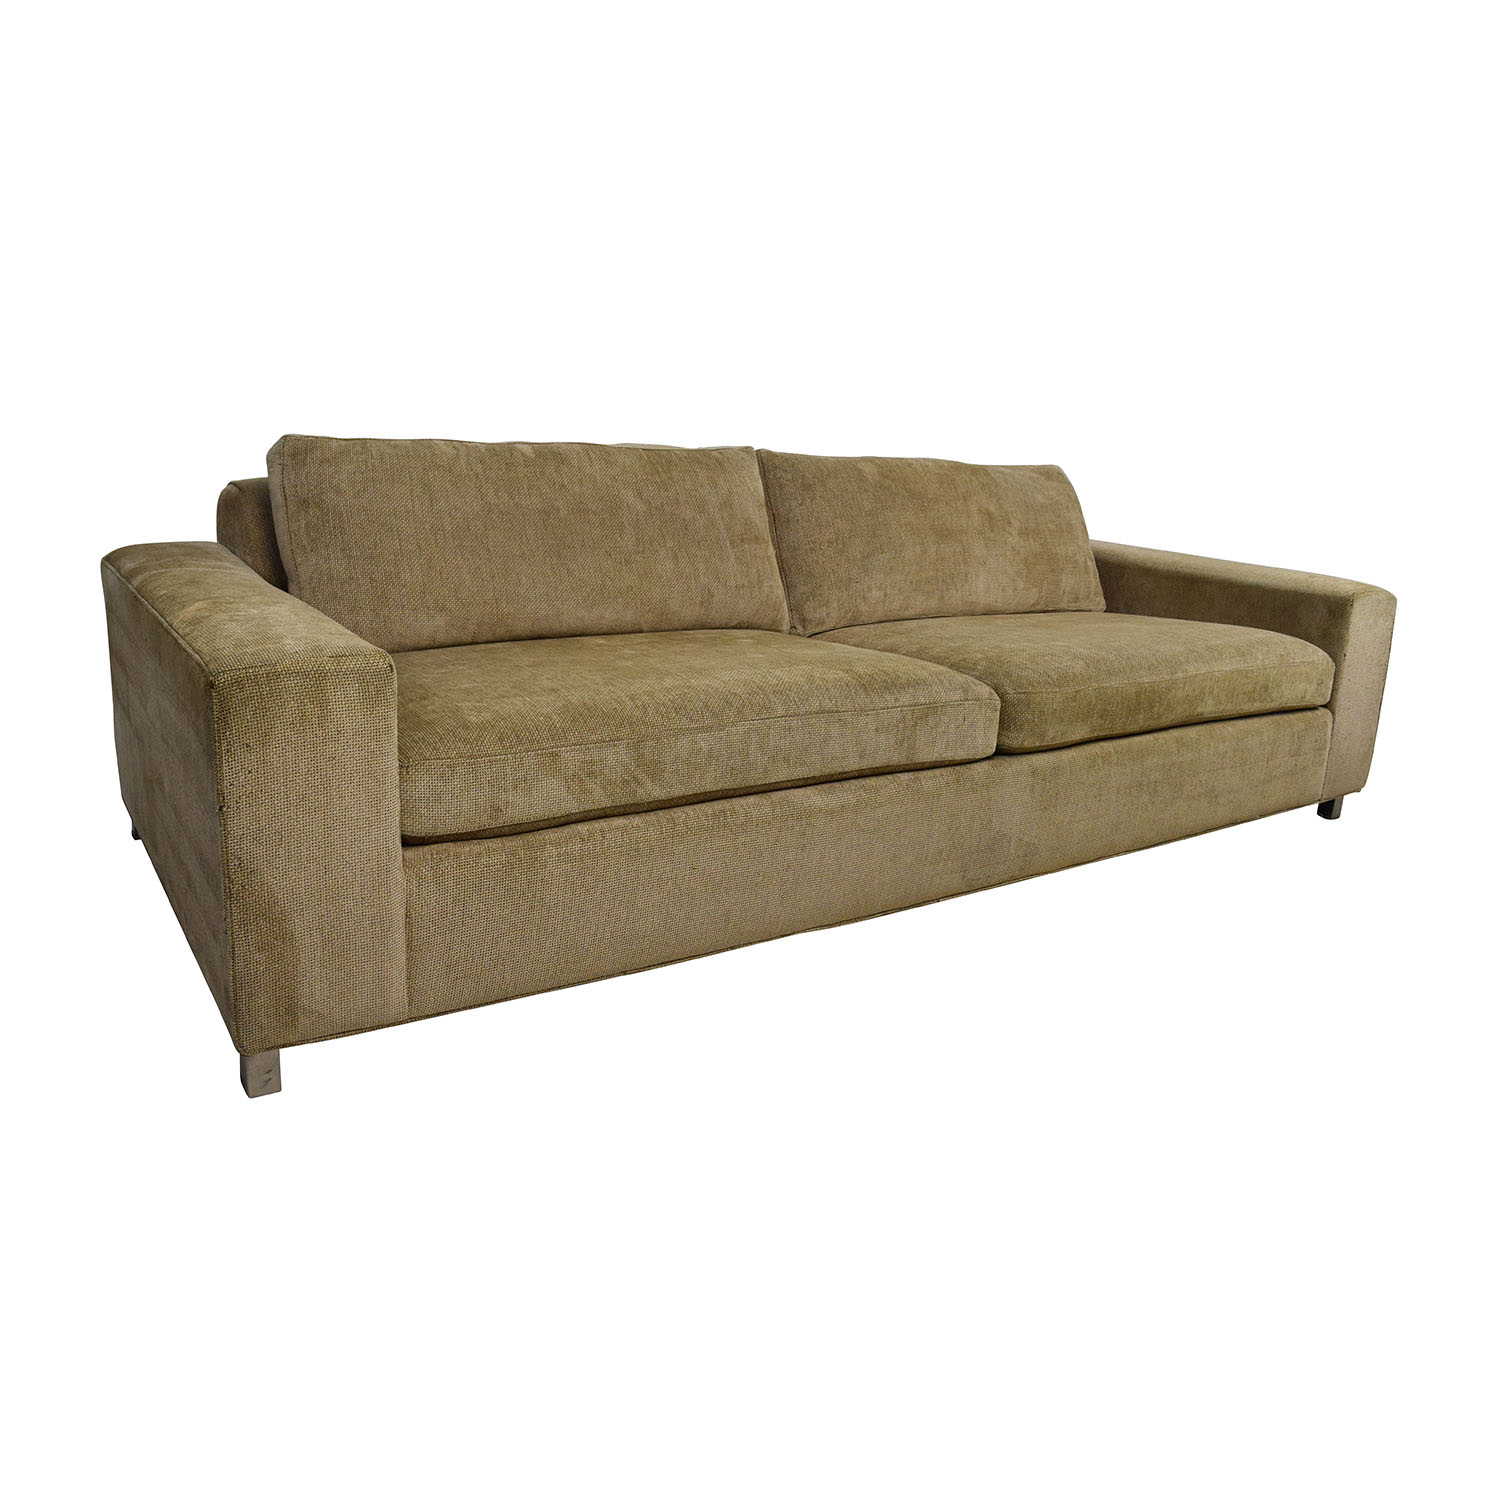 tan fabric sofa how to wash a material 89 off room and board gold